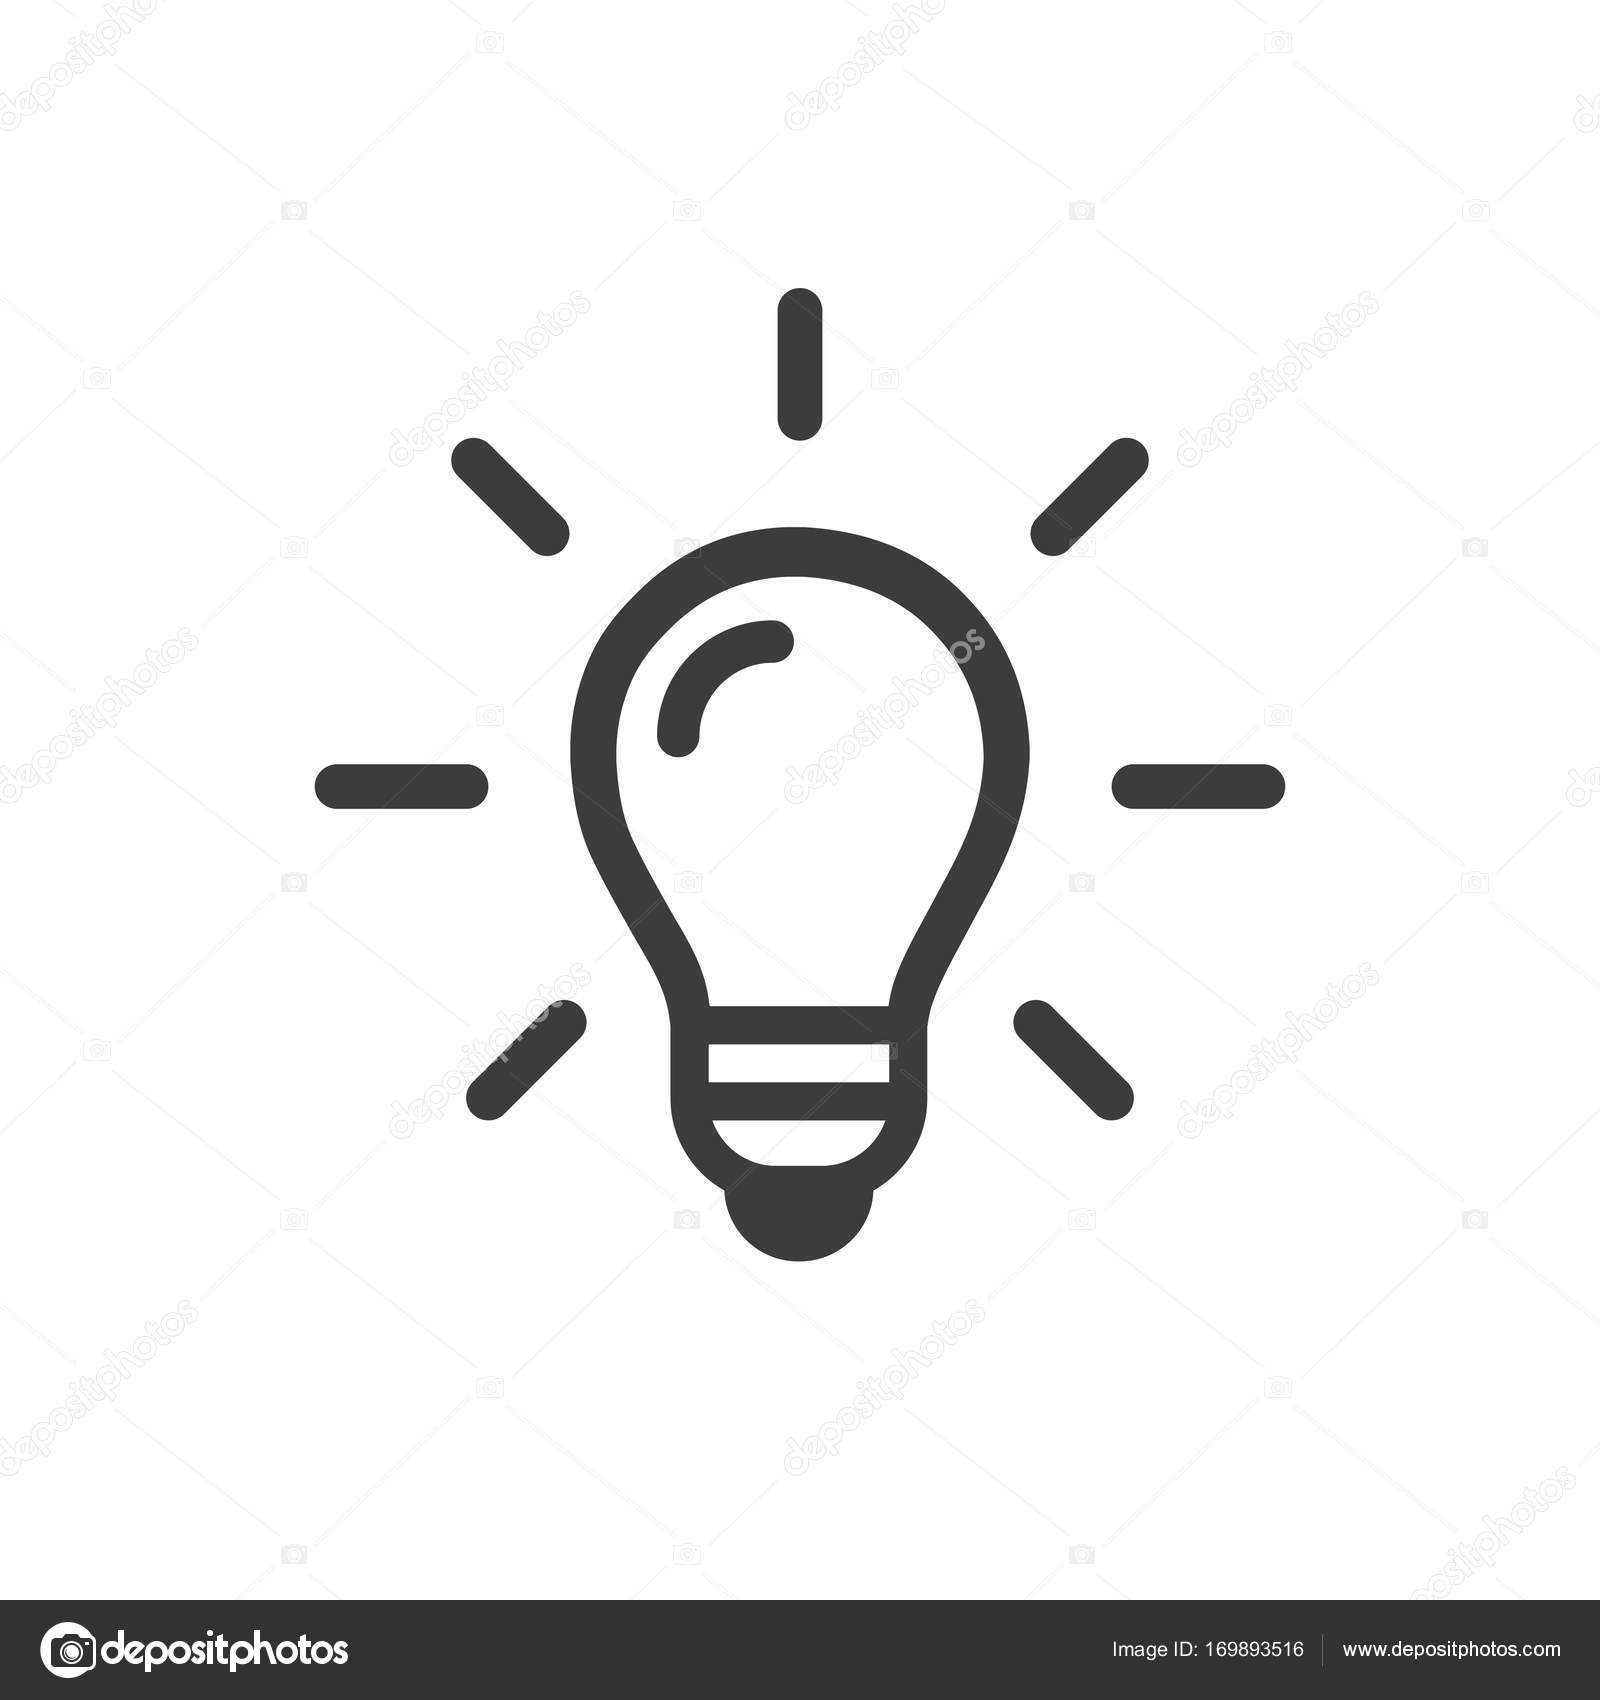 Idea Sign Solution Thinking Concept Lighting Electric Lamp Electricity Shine Trendy Flat Style For Graphic Design Web Site Vector By Alvaroc